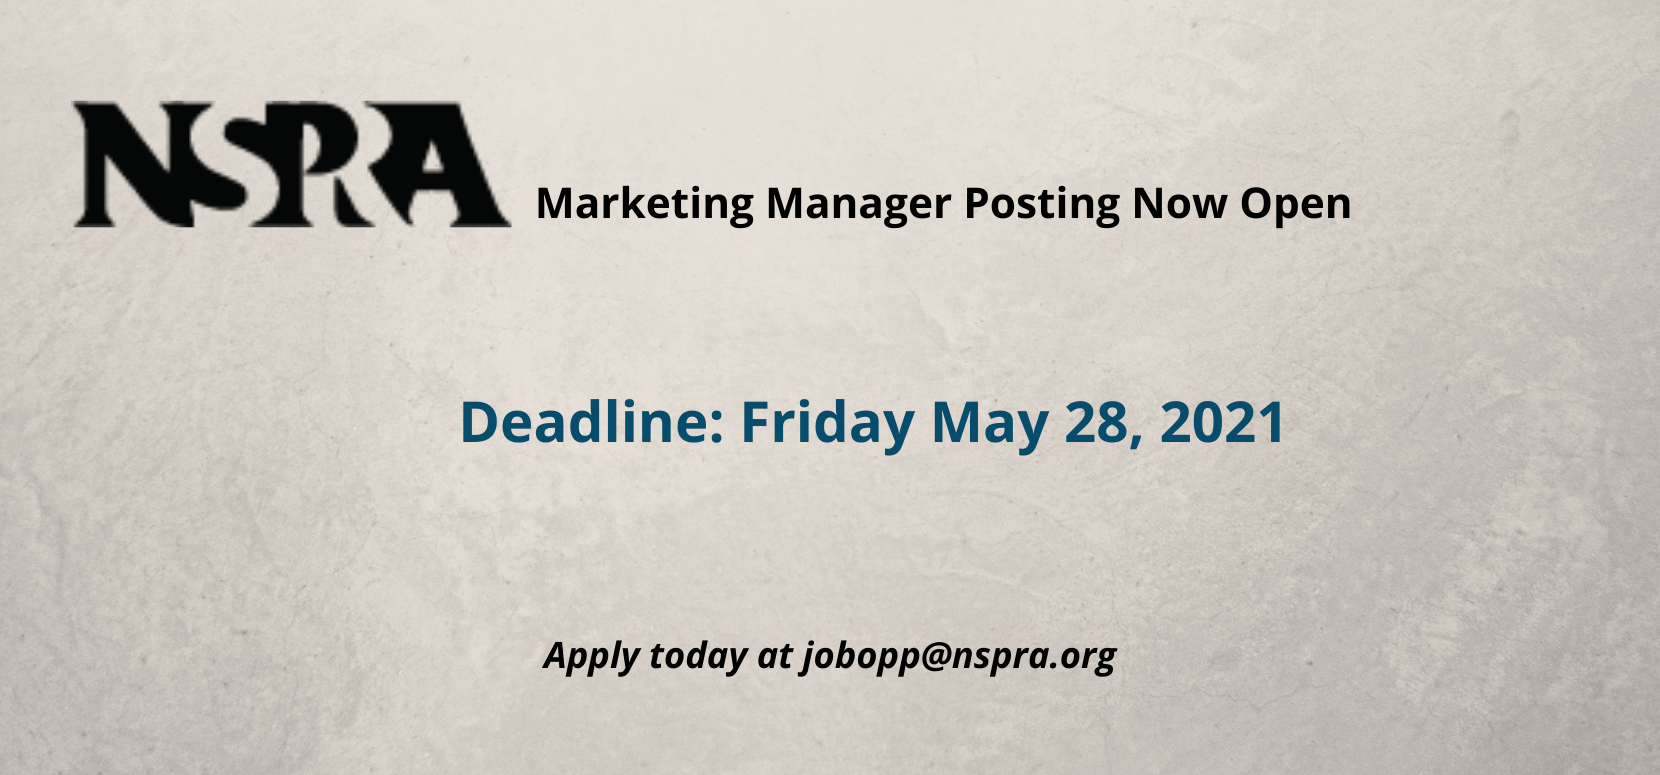 NSPRA  is looking for a Marketing Manager to join their team. This position is immediately available for the right candidate.